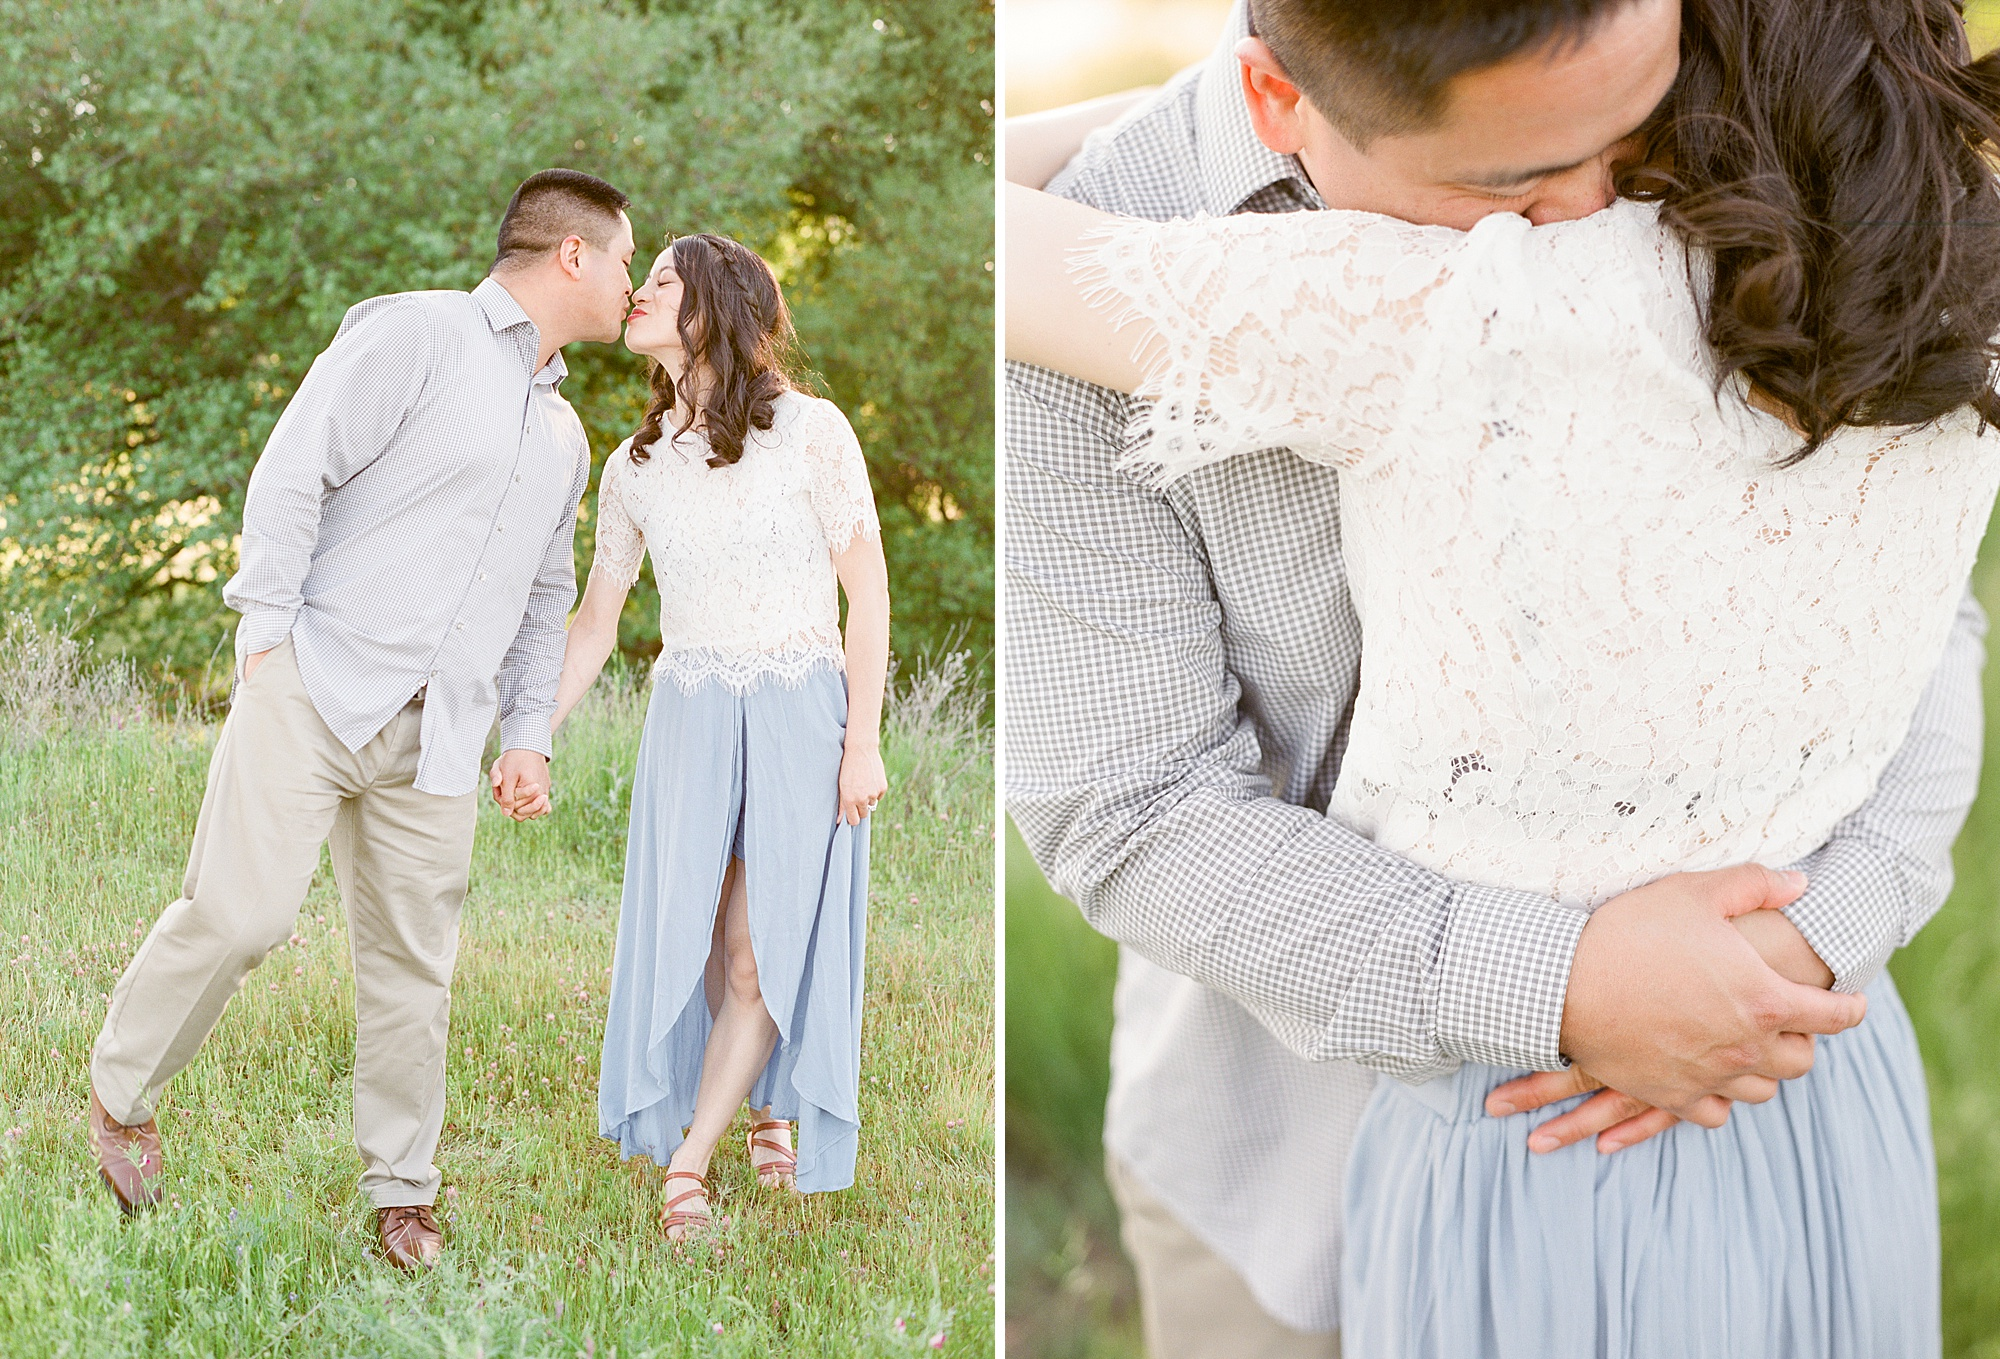 El Dorado Hills Engagement Session - Wendy and Danny - Ashley Baumgartner - Sacramento Wedding Photographer and Sacramento Wedding Photography - Bay Area Wedding Photographer_0008.jpg